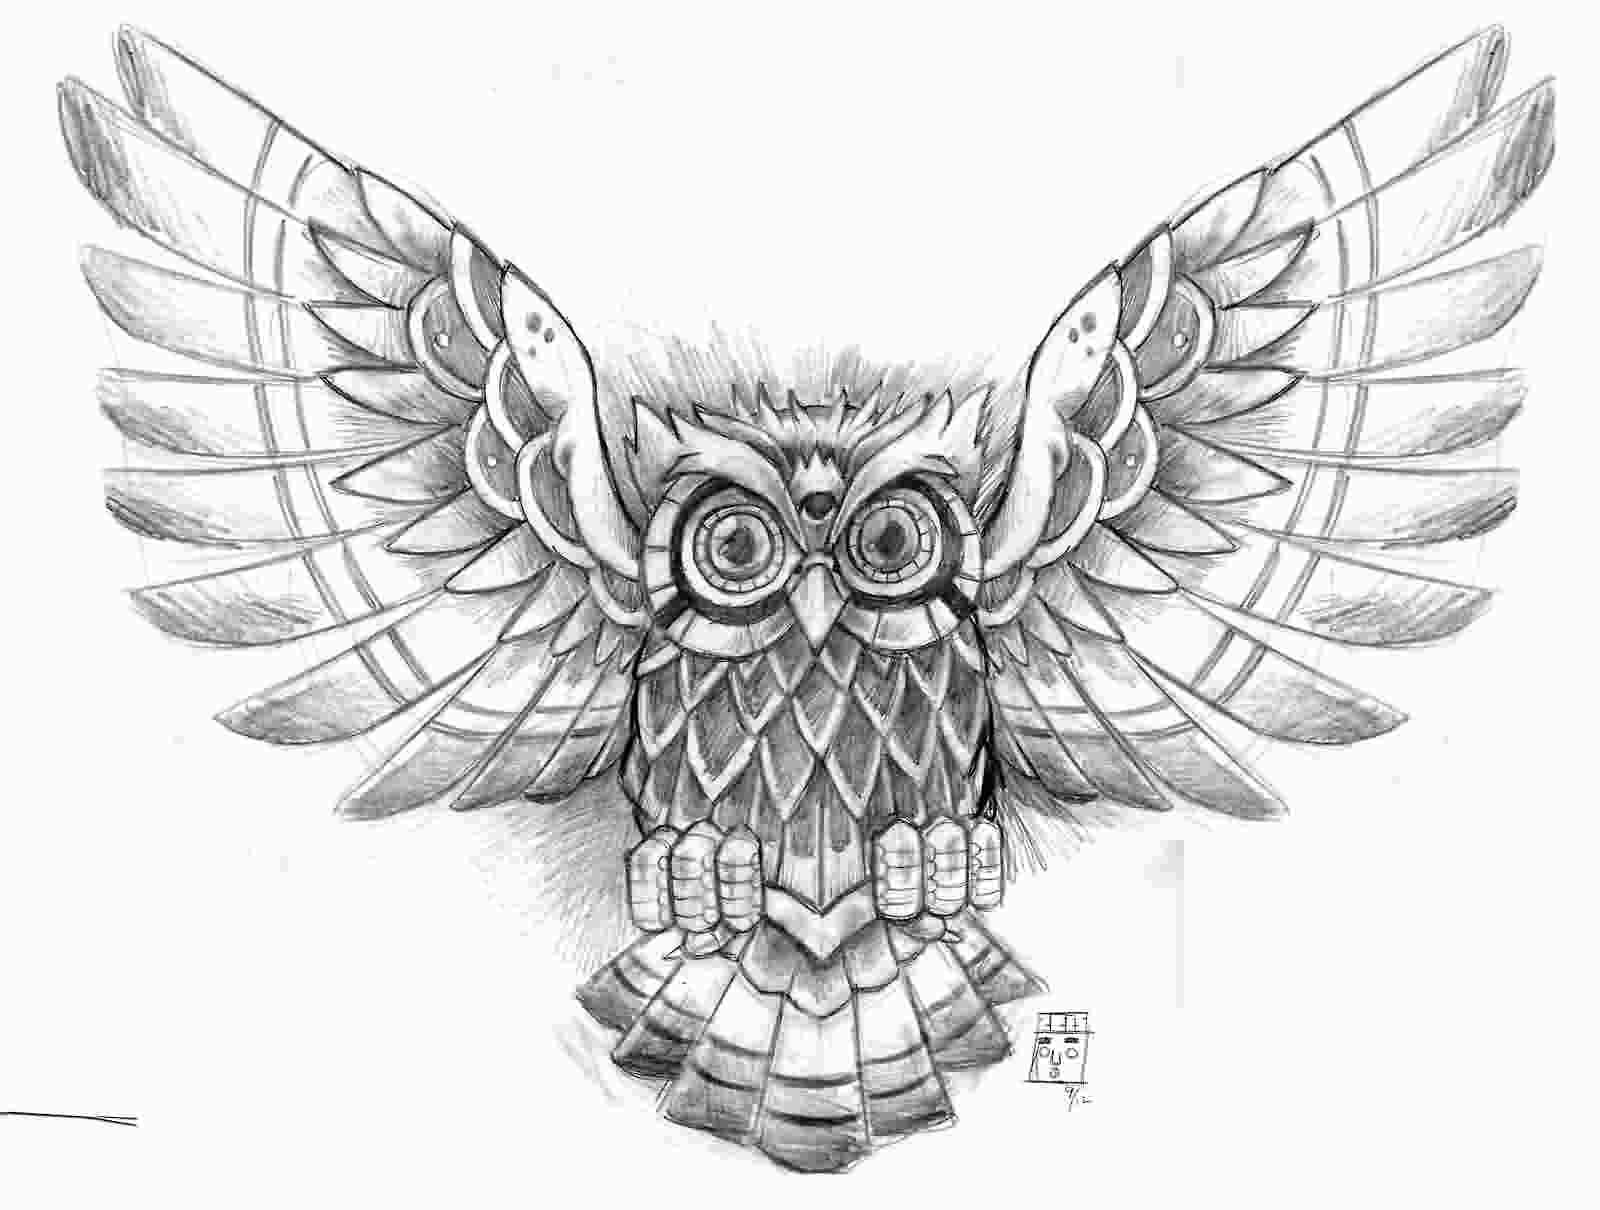 how to draw an owl with wings open